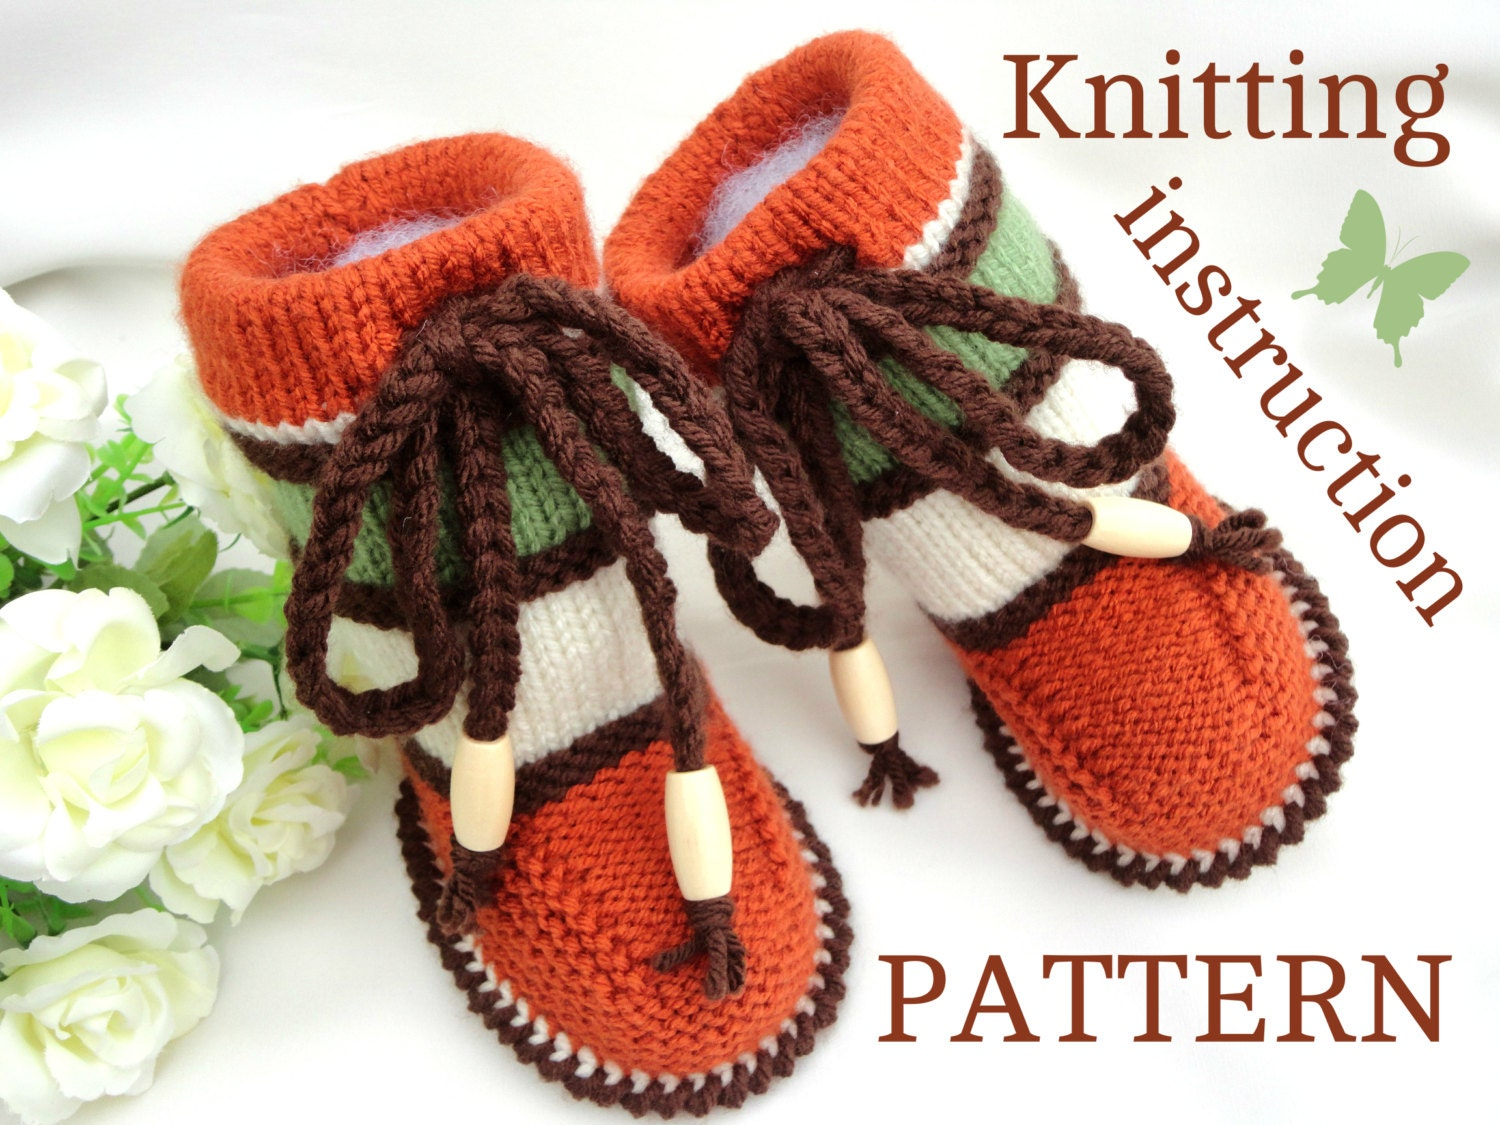 Knitting Pattern For Baby Boy Shoes : Knitting PATTERN Baby Booties PATTERN Knit Baby Shoes Baby Boy